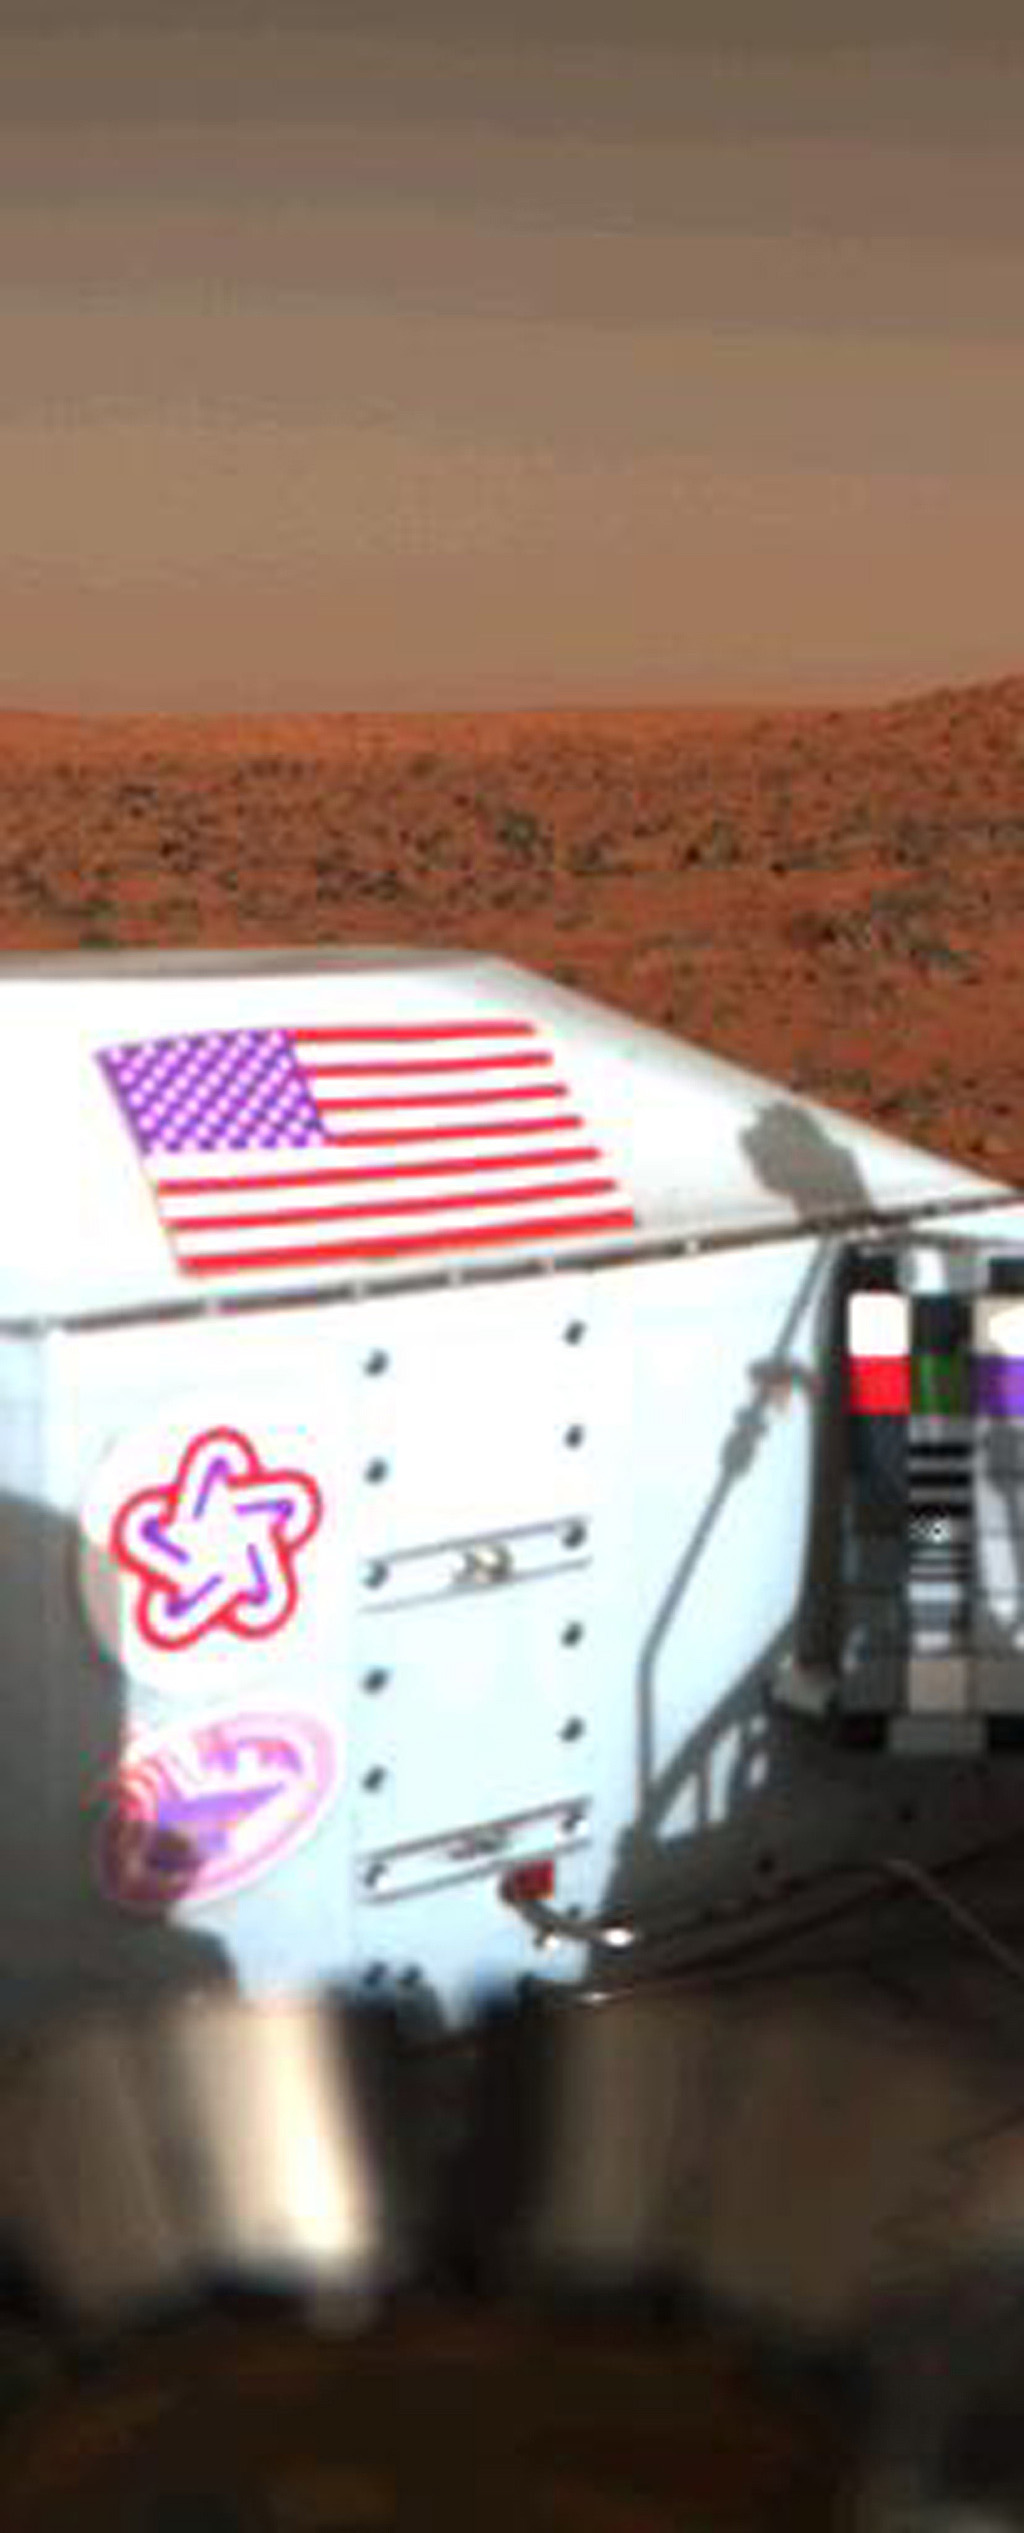 The flag of the United States with the rocky Martian surface in the background is seen in this color picture taken on the sixth day of NASA's Viking Lander 1 on Mars on July 26, 1997.